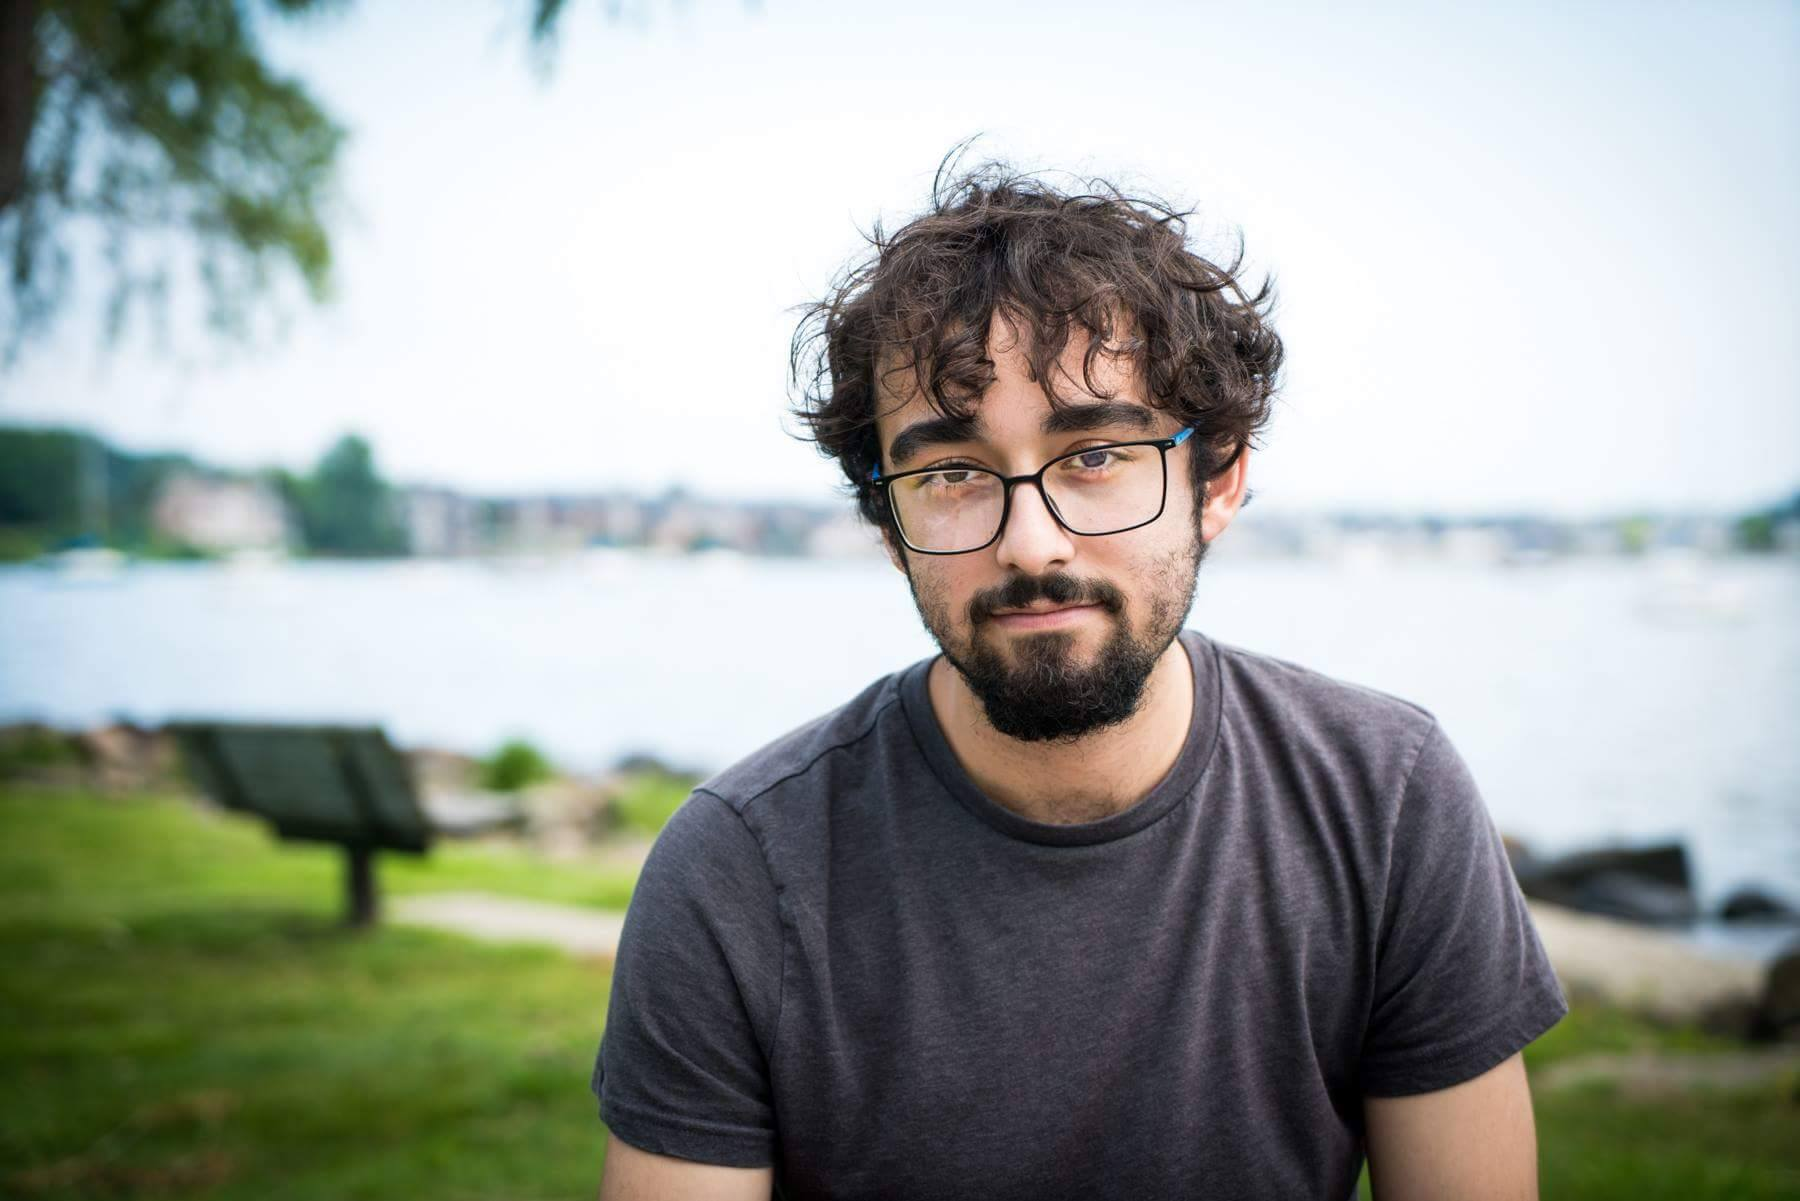 Drummond Dominguez-Kincannon co-founder - Drummond is a guitarist, composer, and teacher based out of New York. He attended the Conservatory of Music at Purchase College where he studied jazz guitar. Drummond's compositions span a wide range of genres from progressive metal and jazz, to chiptune music and video game soundtracks.